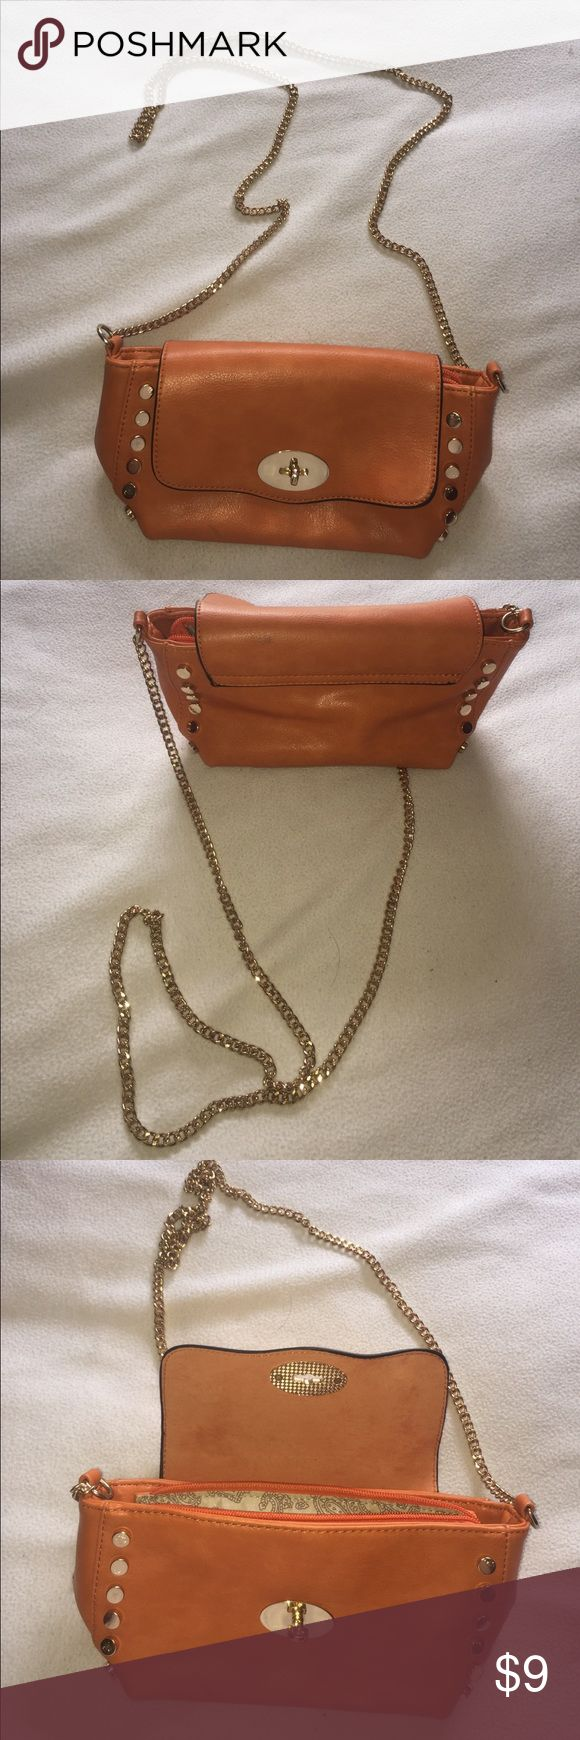 Mini side bag!!! Orange clutch bag, great condition!! Bags Crossbody Bags